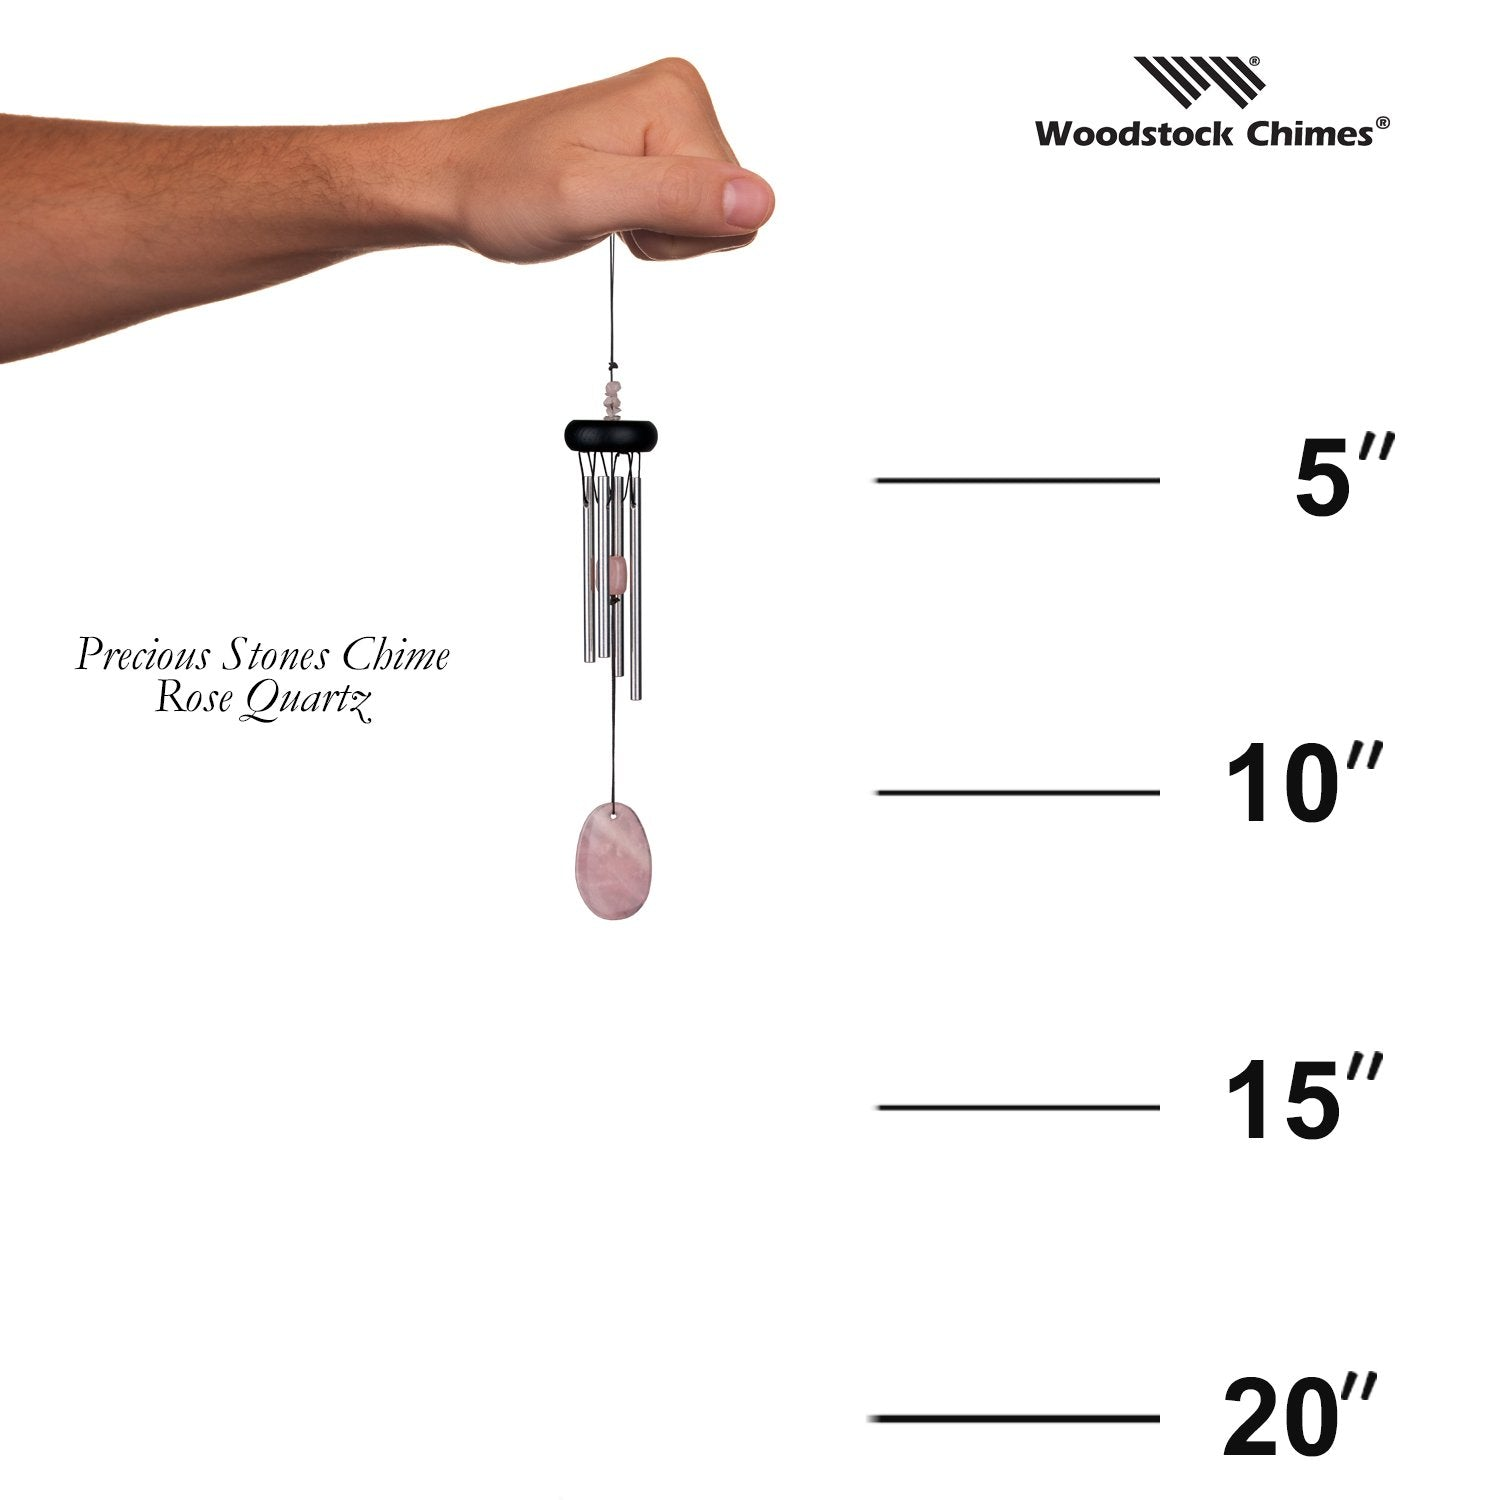 Precious Stones Chime - Rose Quartz proportion image